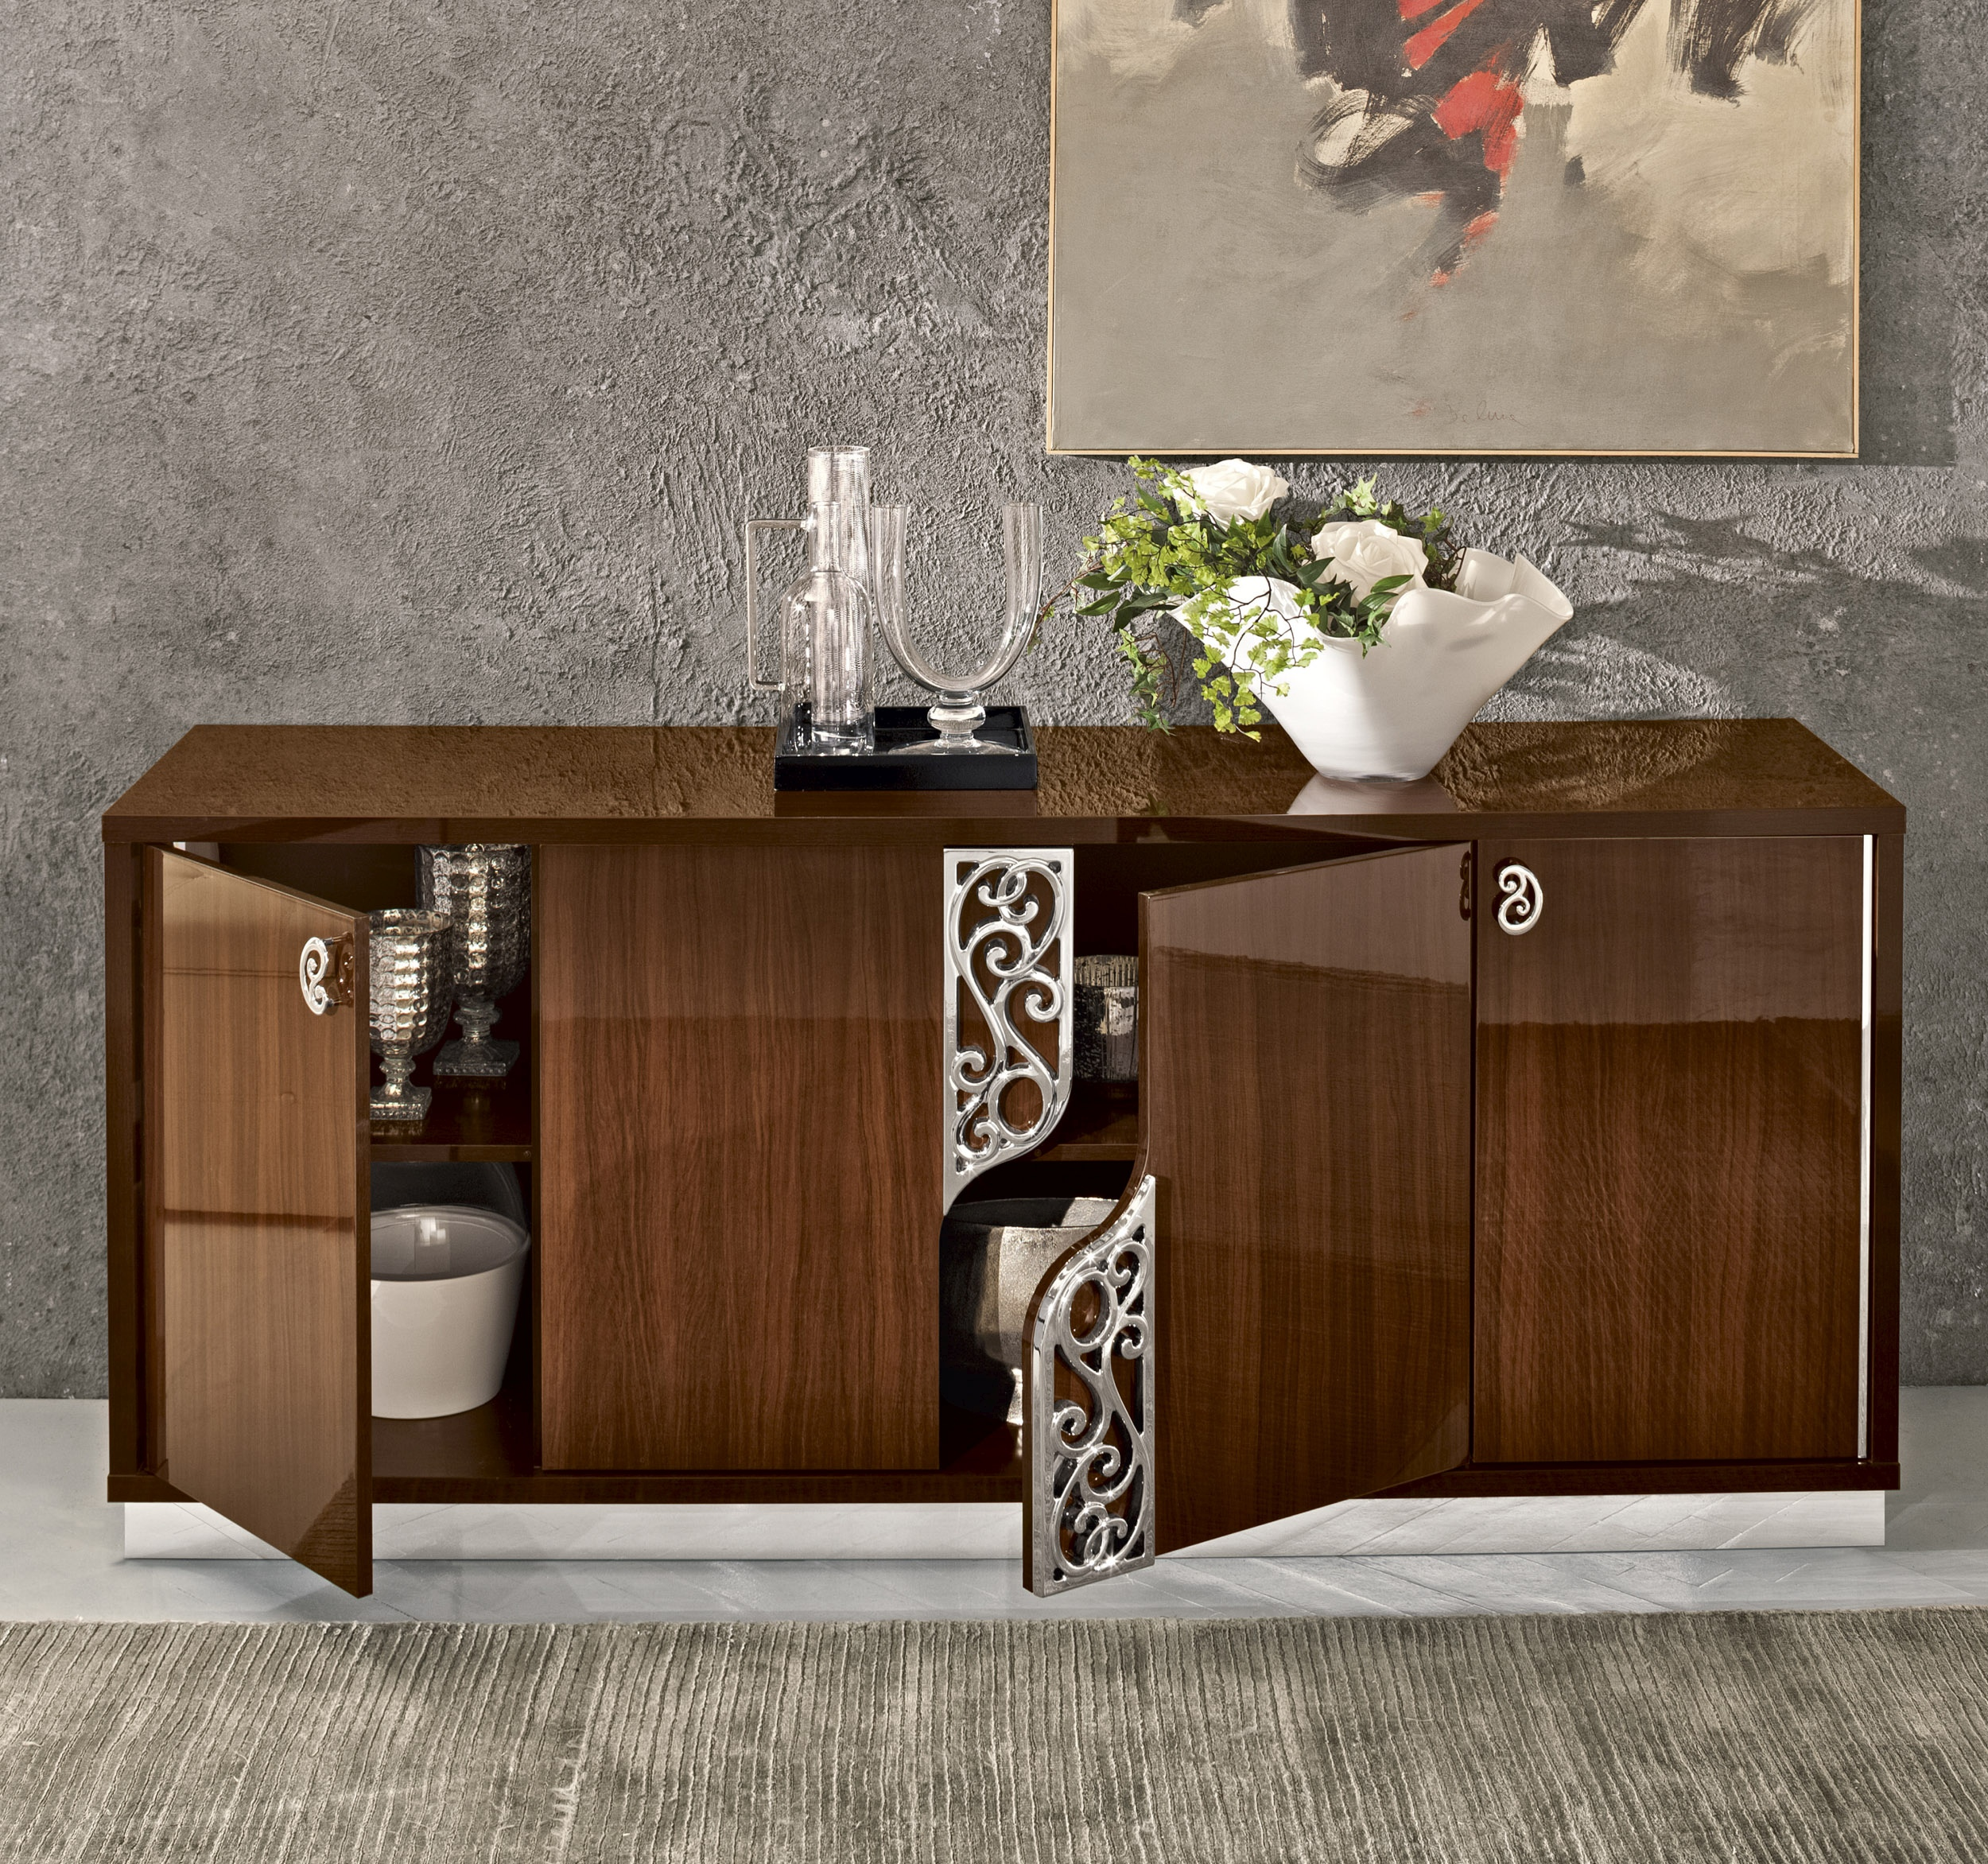 Discount Kitchen Cabinets Portland Oregon: Four Door Walnut Color Cabinet Upscale Look Buffet